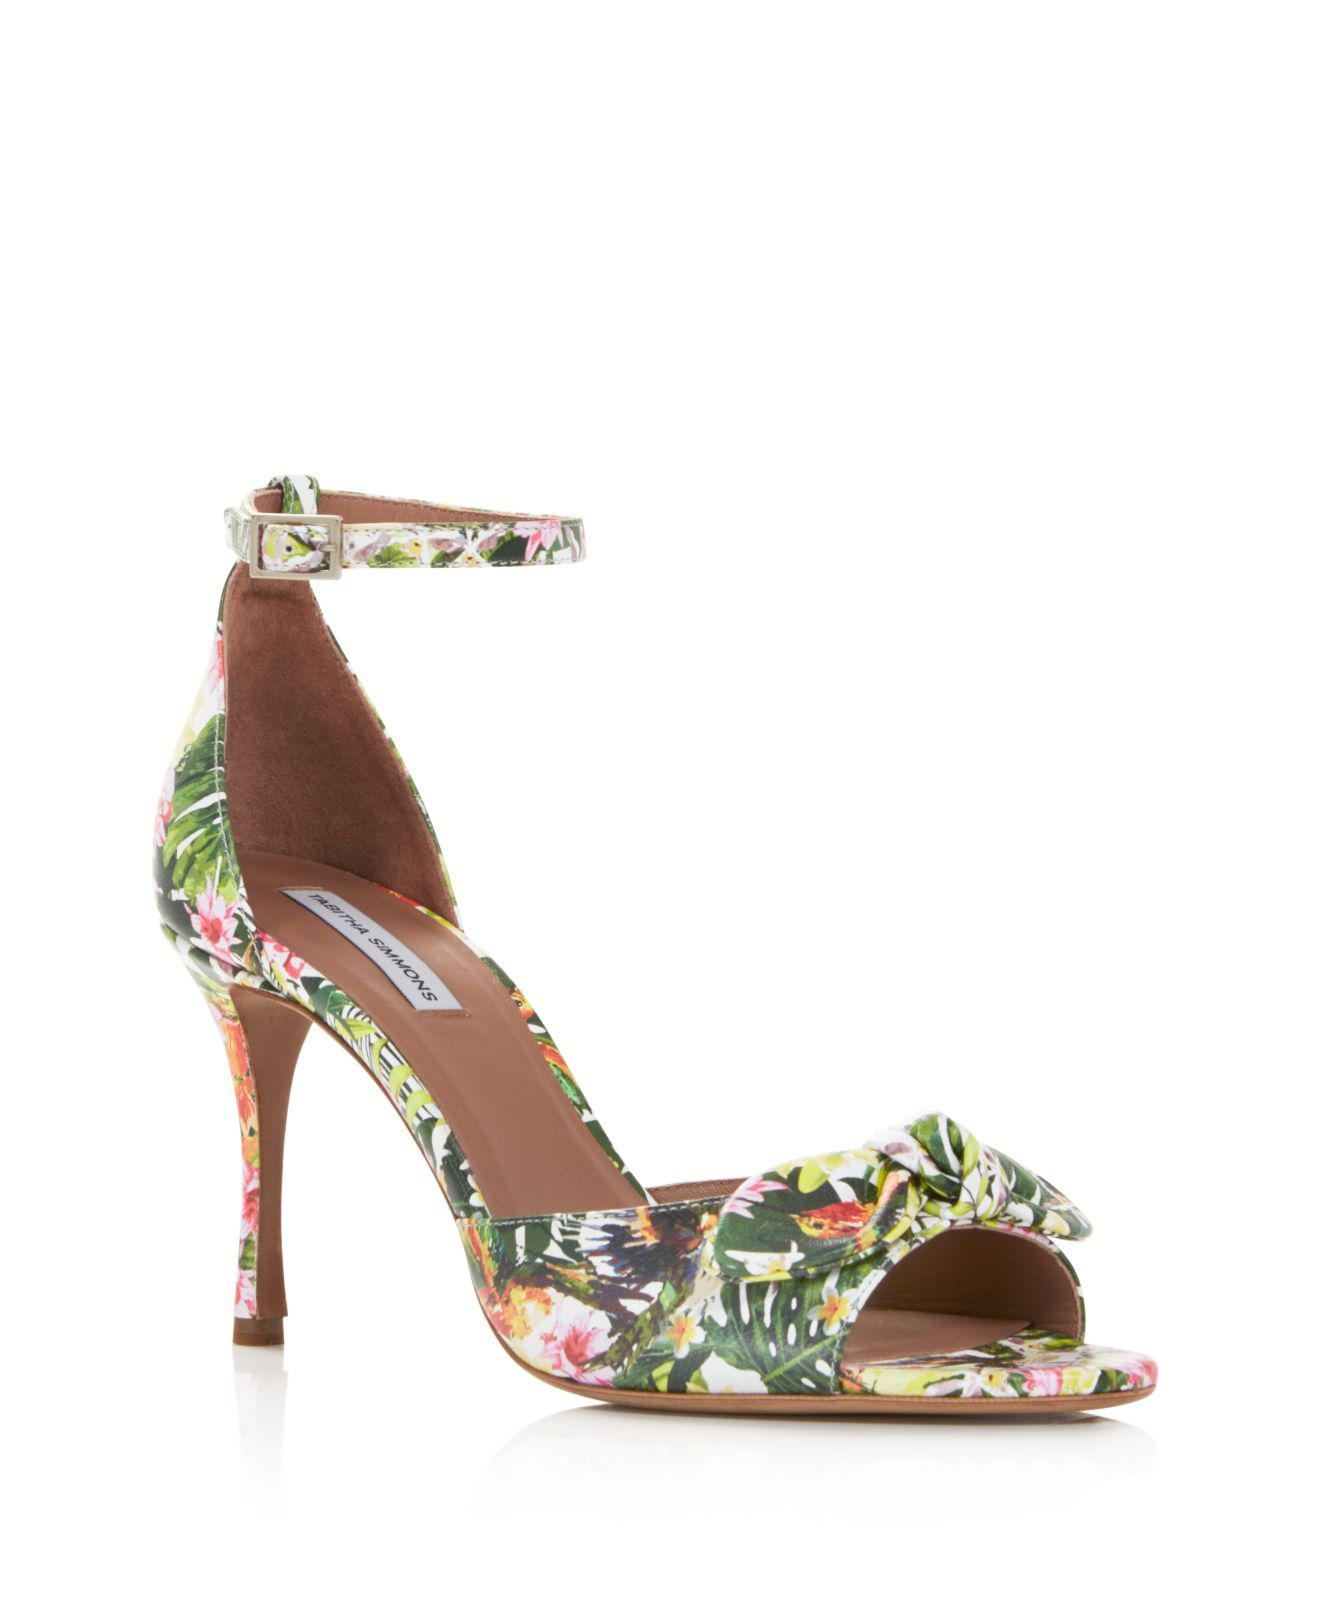 Tabitha Simmons Women's Mimmi Floral Print Leather High-Heel Sandals lX1yRXj